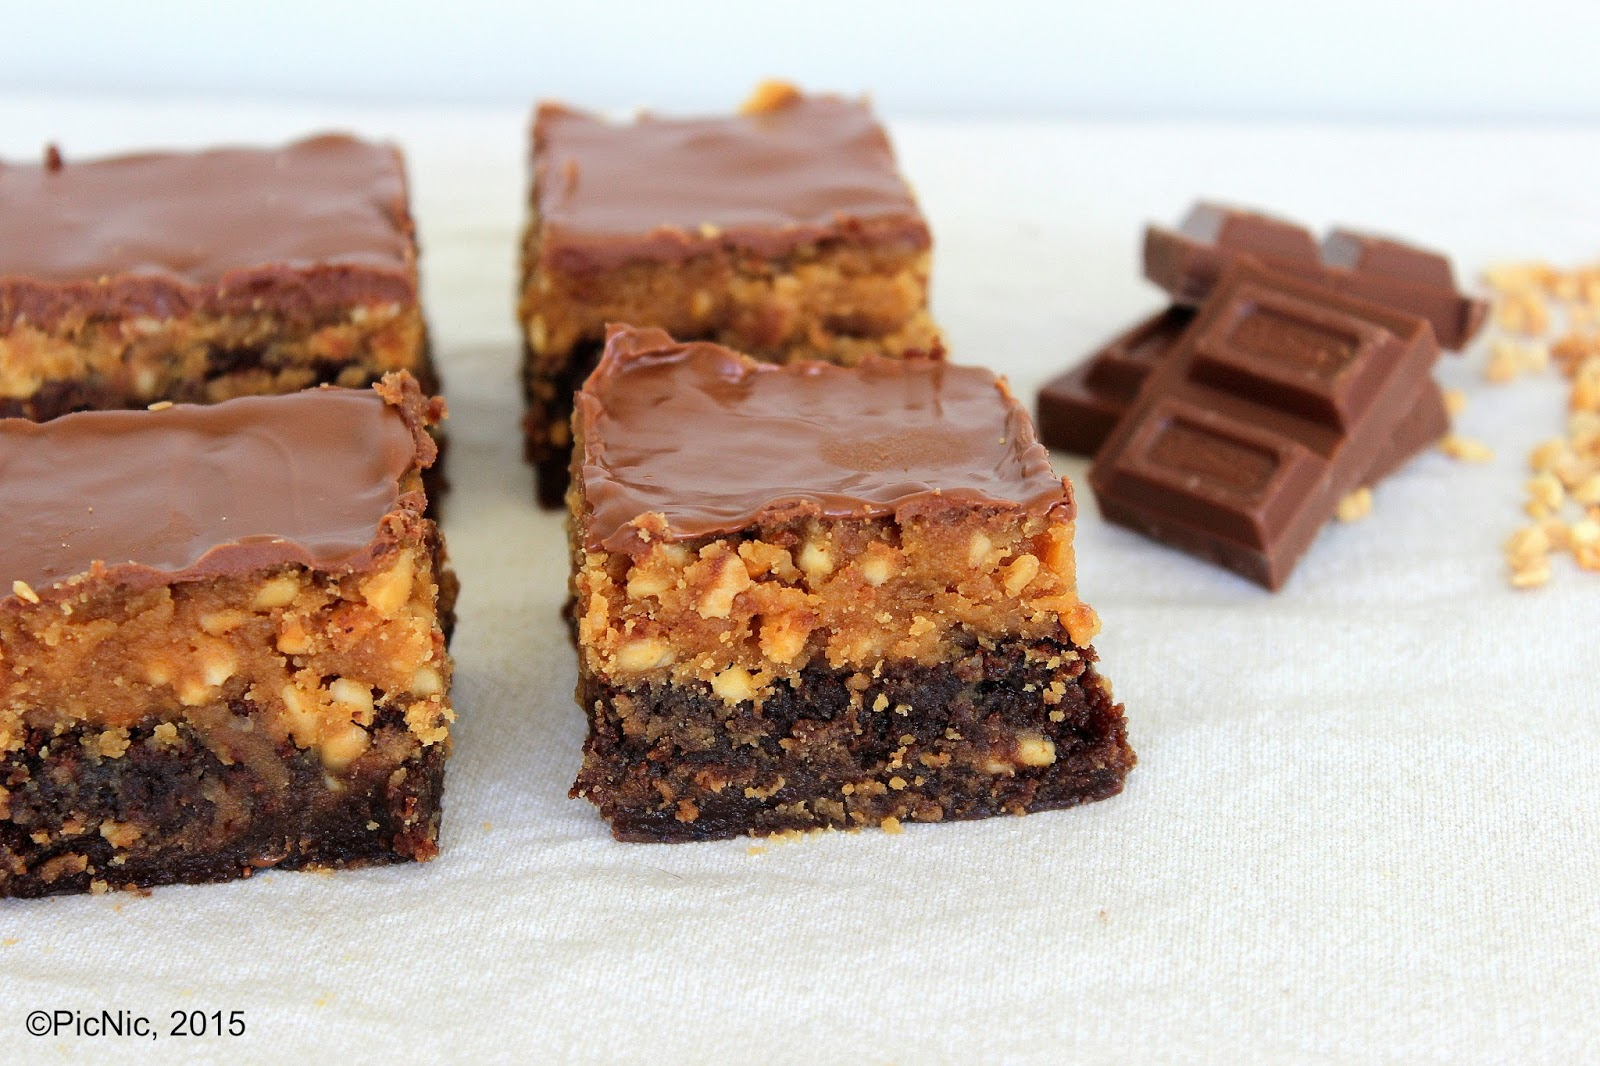 PicNic: Chocolate and Peanut Butter Brownies